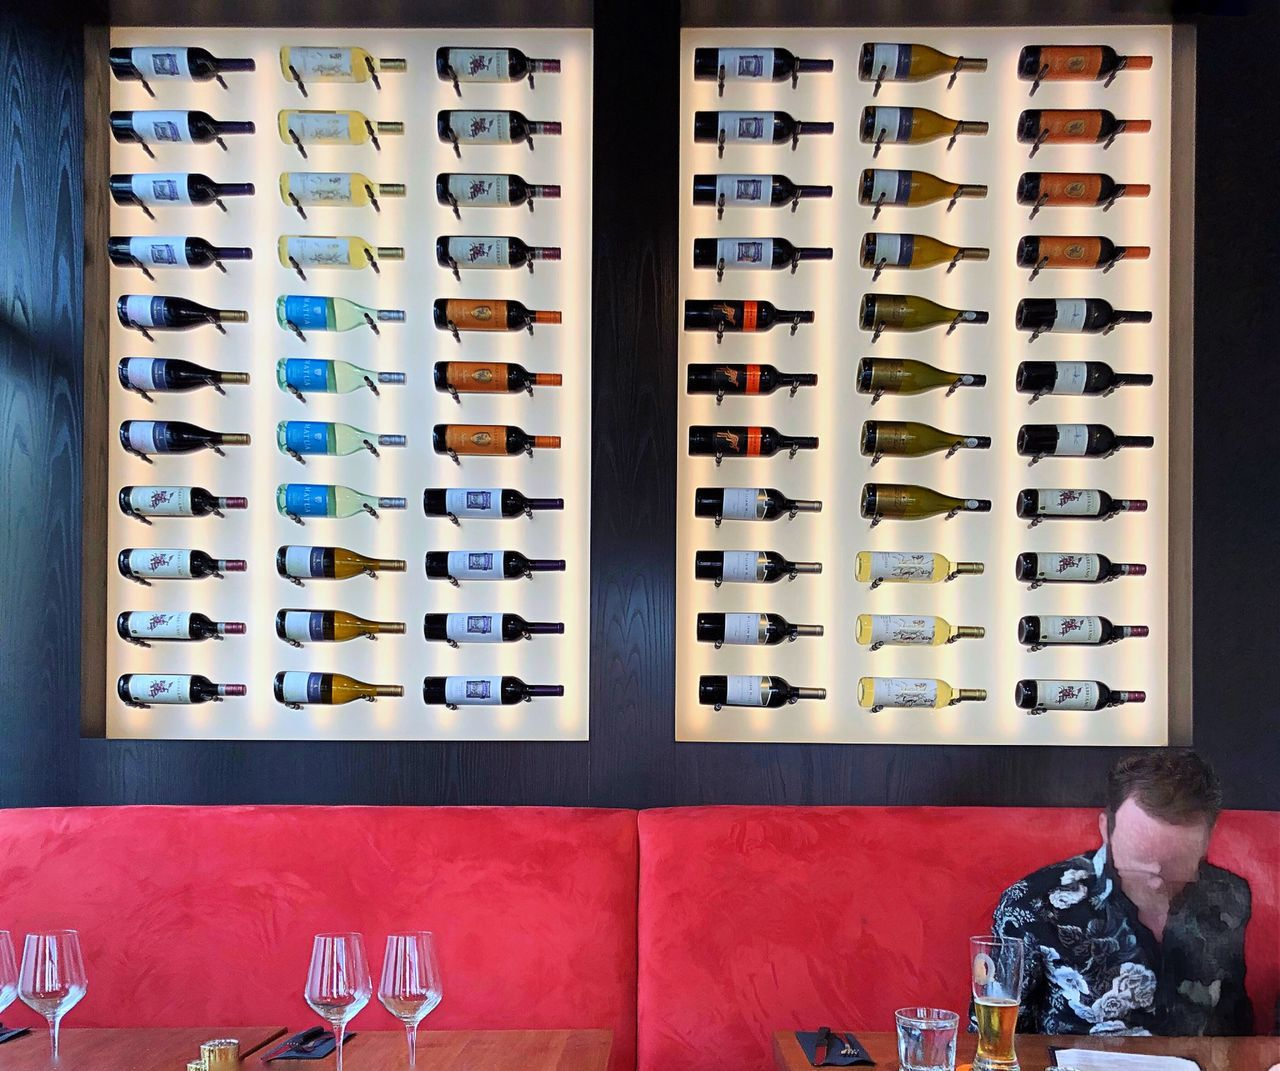 LOW ANGLE VIEW OF WINE BOTTLES ON TABLE AT RESTAURANT